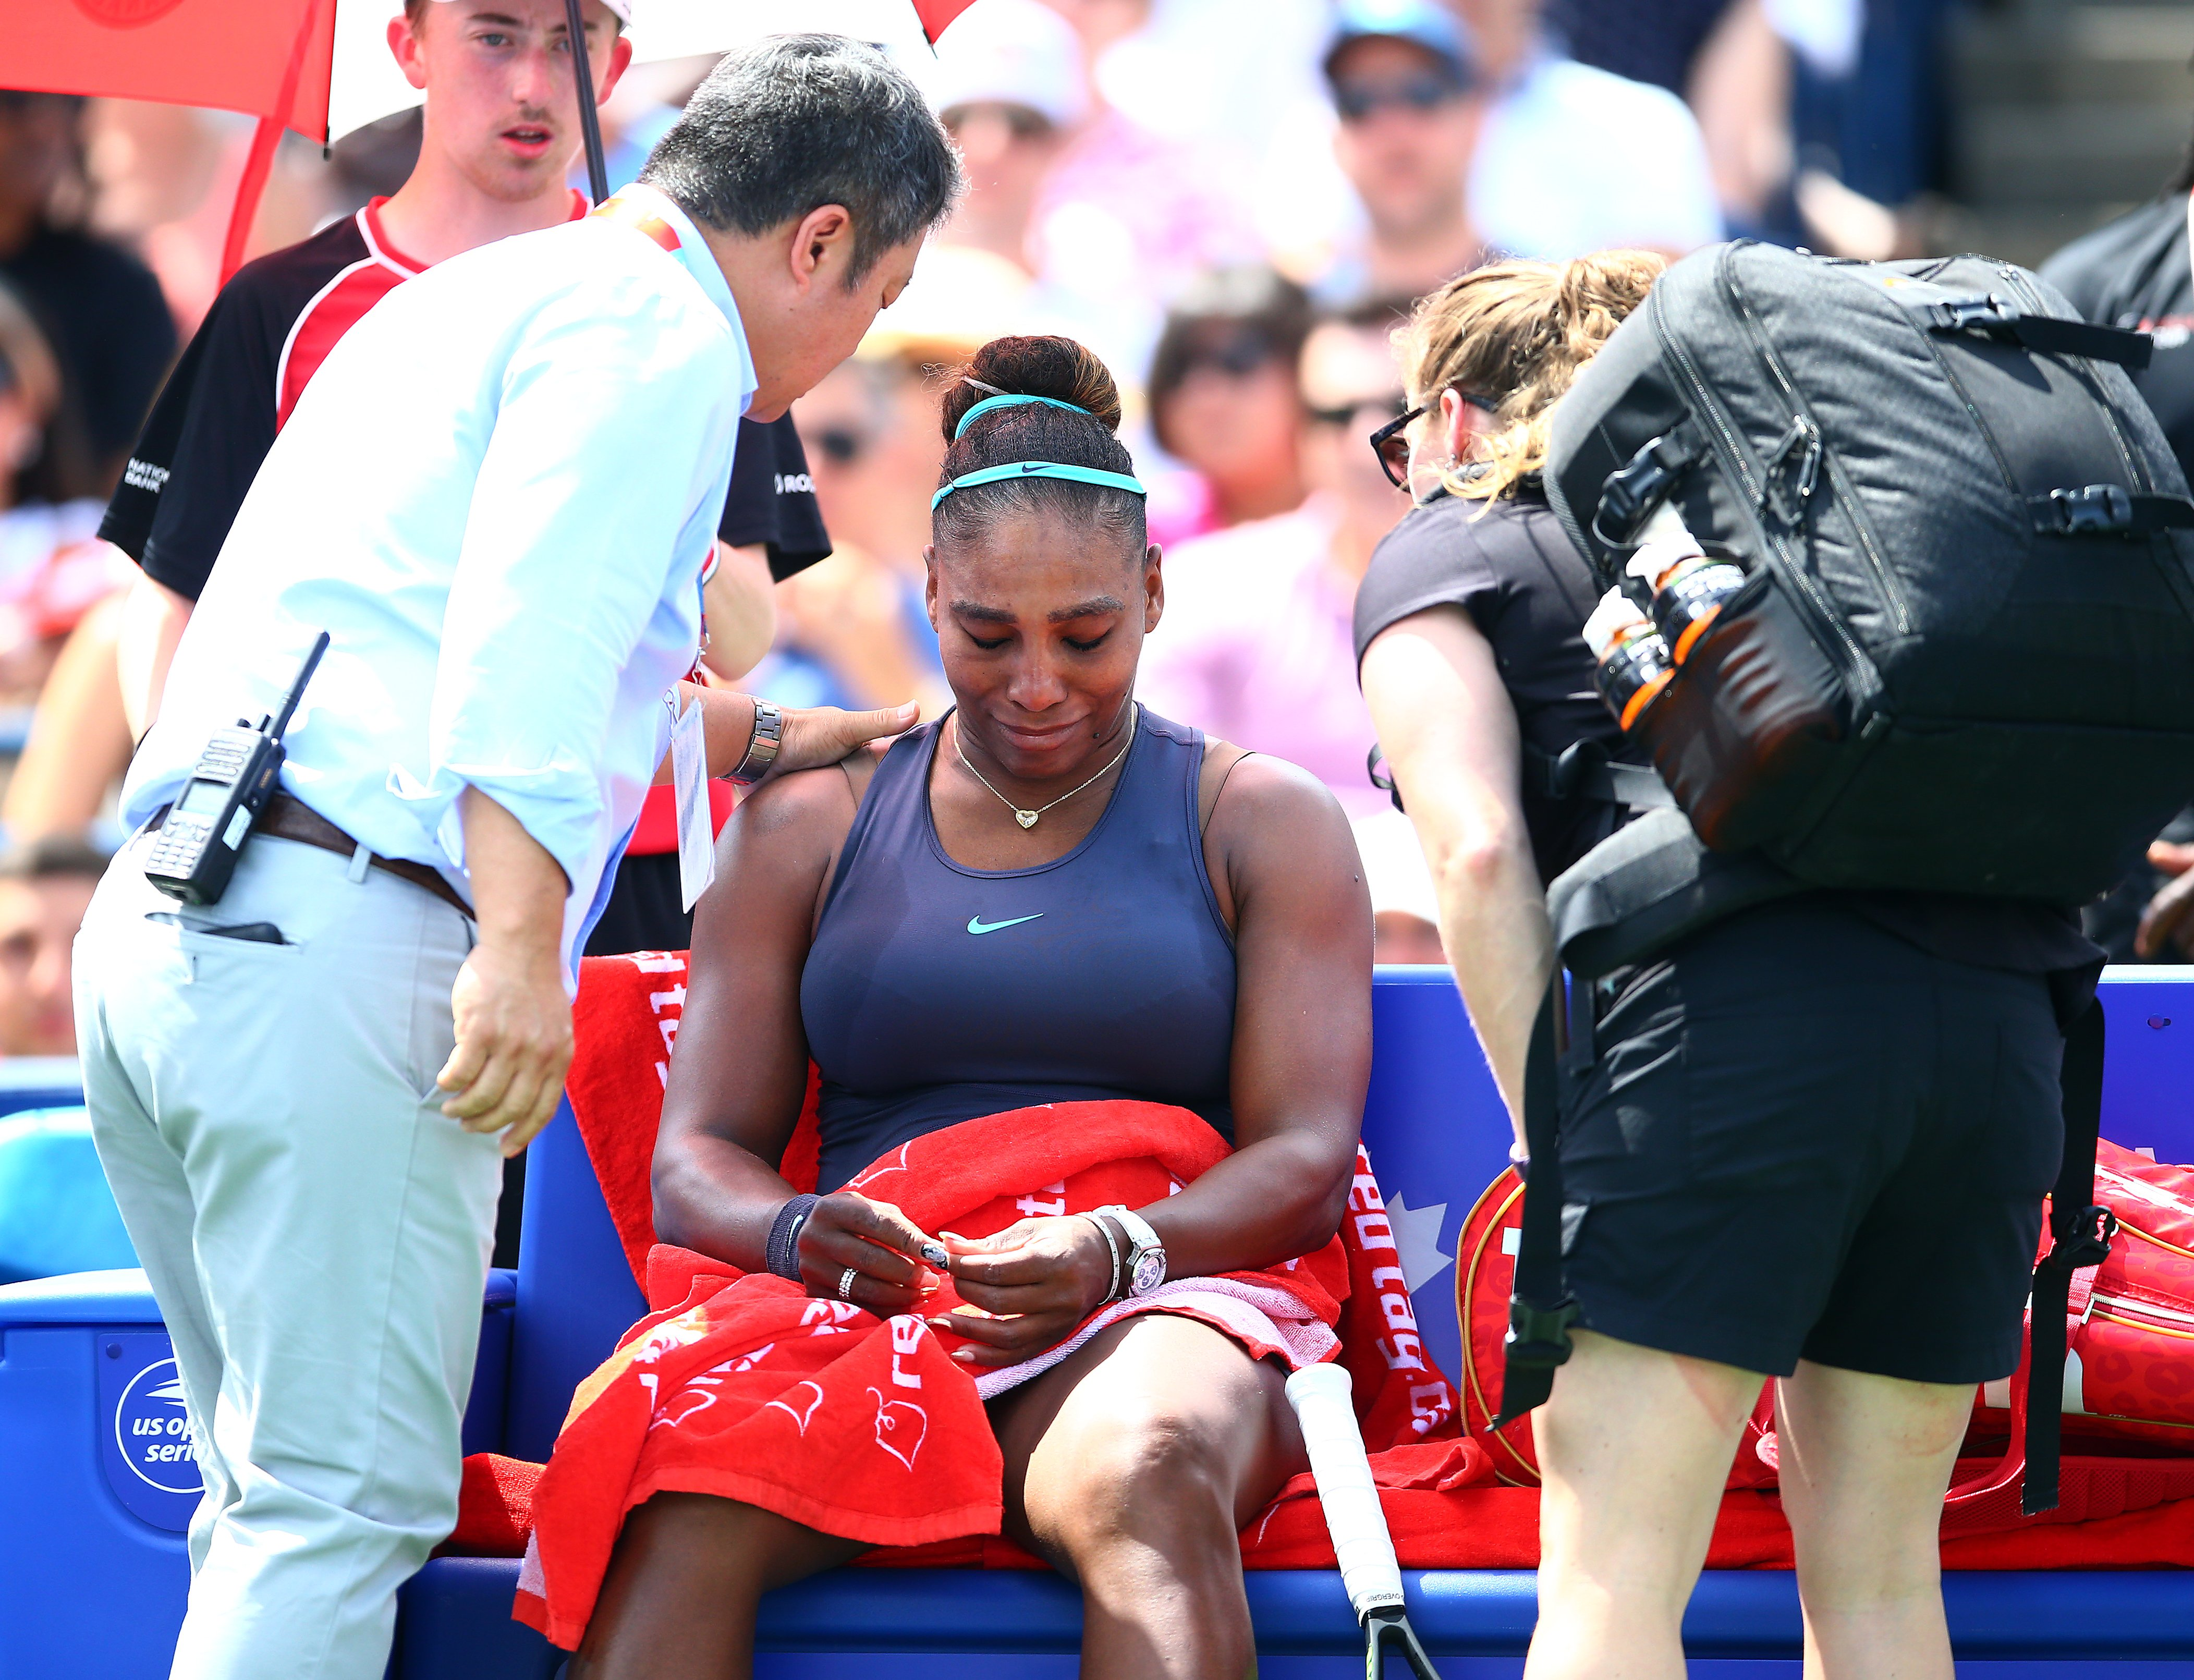 Serena Williams sitting on a bench after suffering a back injury at the 2019 Rogers Cup in Toronto, Canada.   Photo: Getty Images